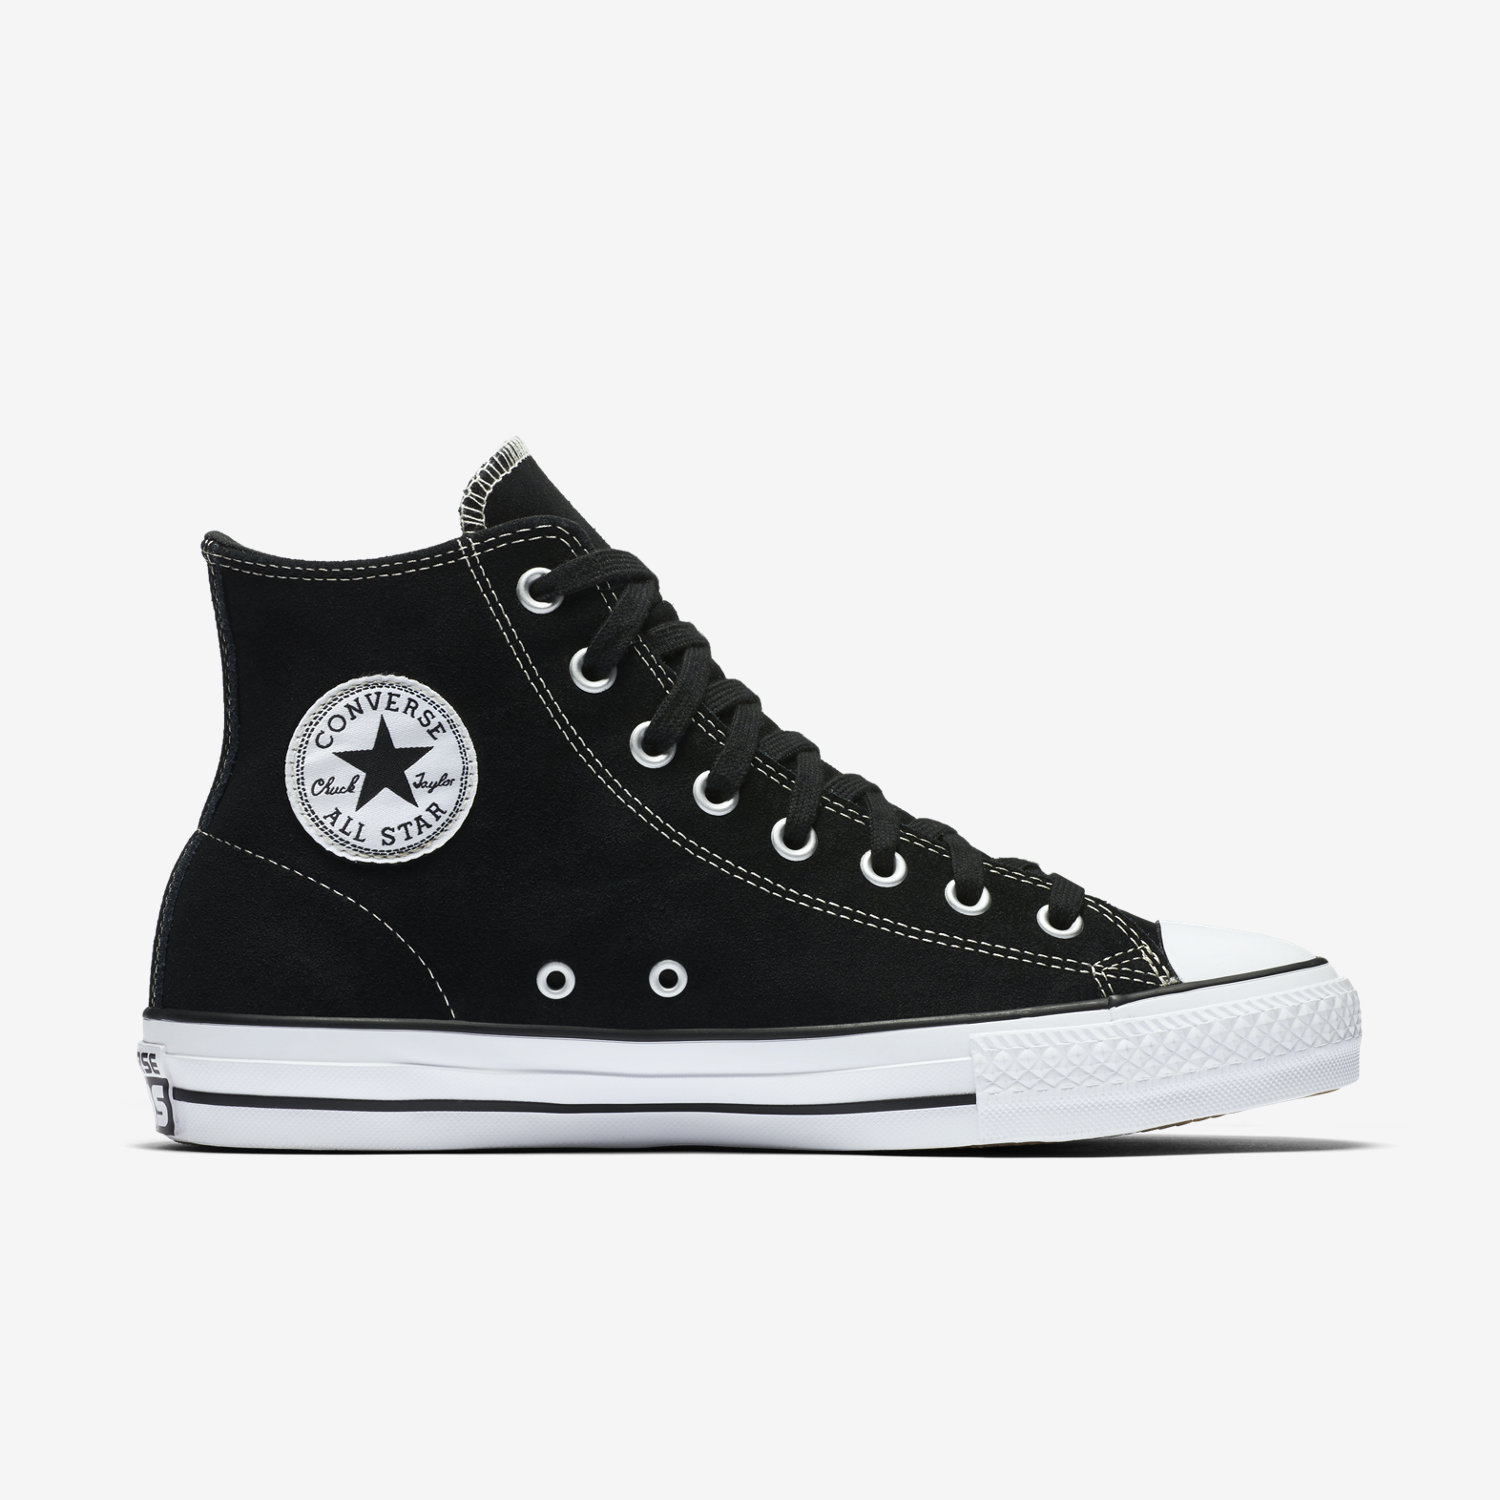 cba67ae6623d ... where can i buy converse cons ctas pro suede high top mens  skateboarding shoe. nike